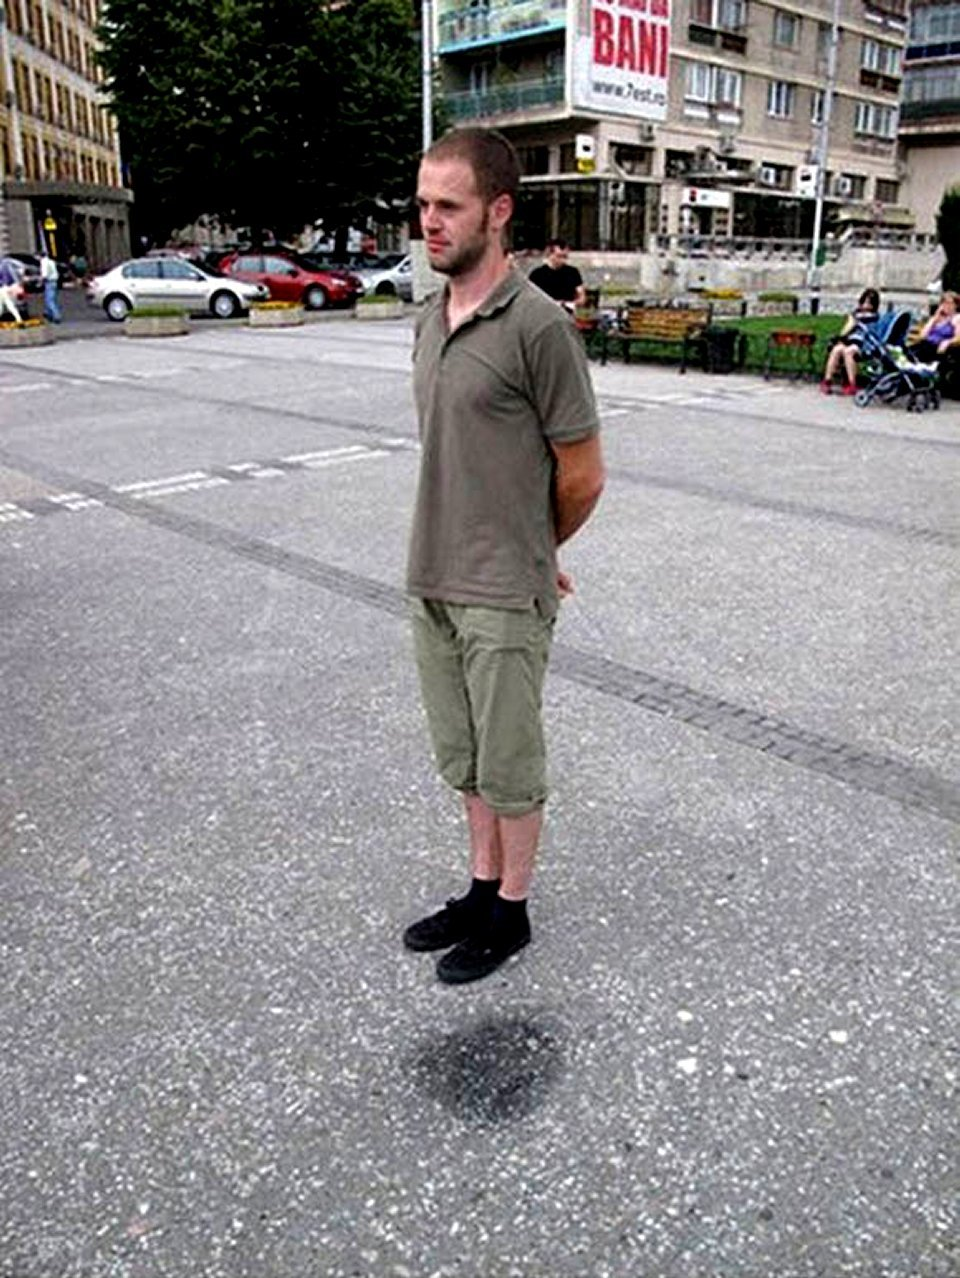 actual non photoshopped picture of levitating man on public street